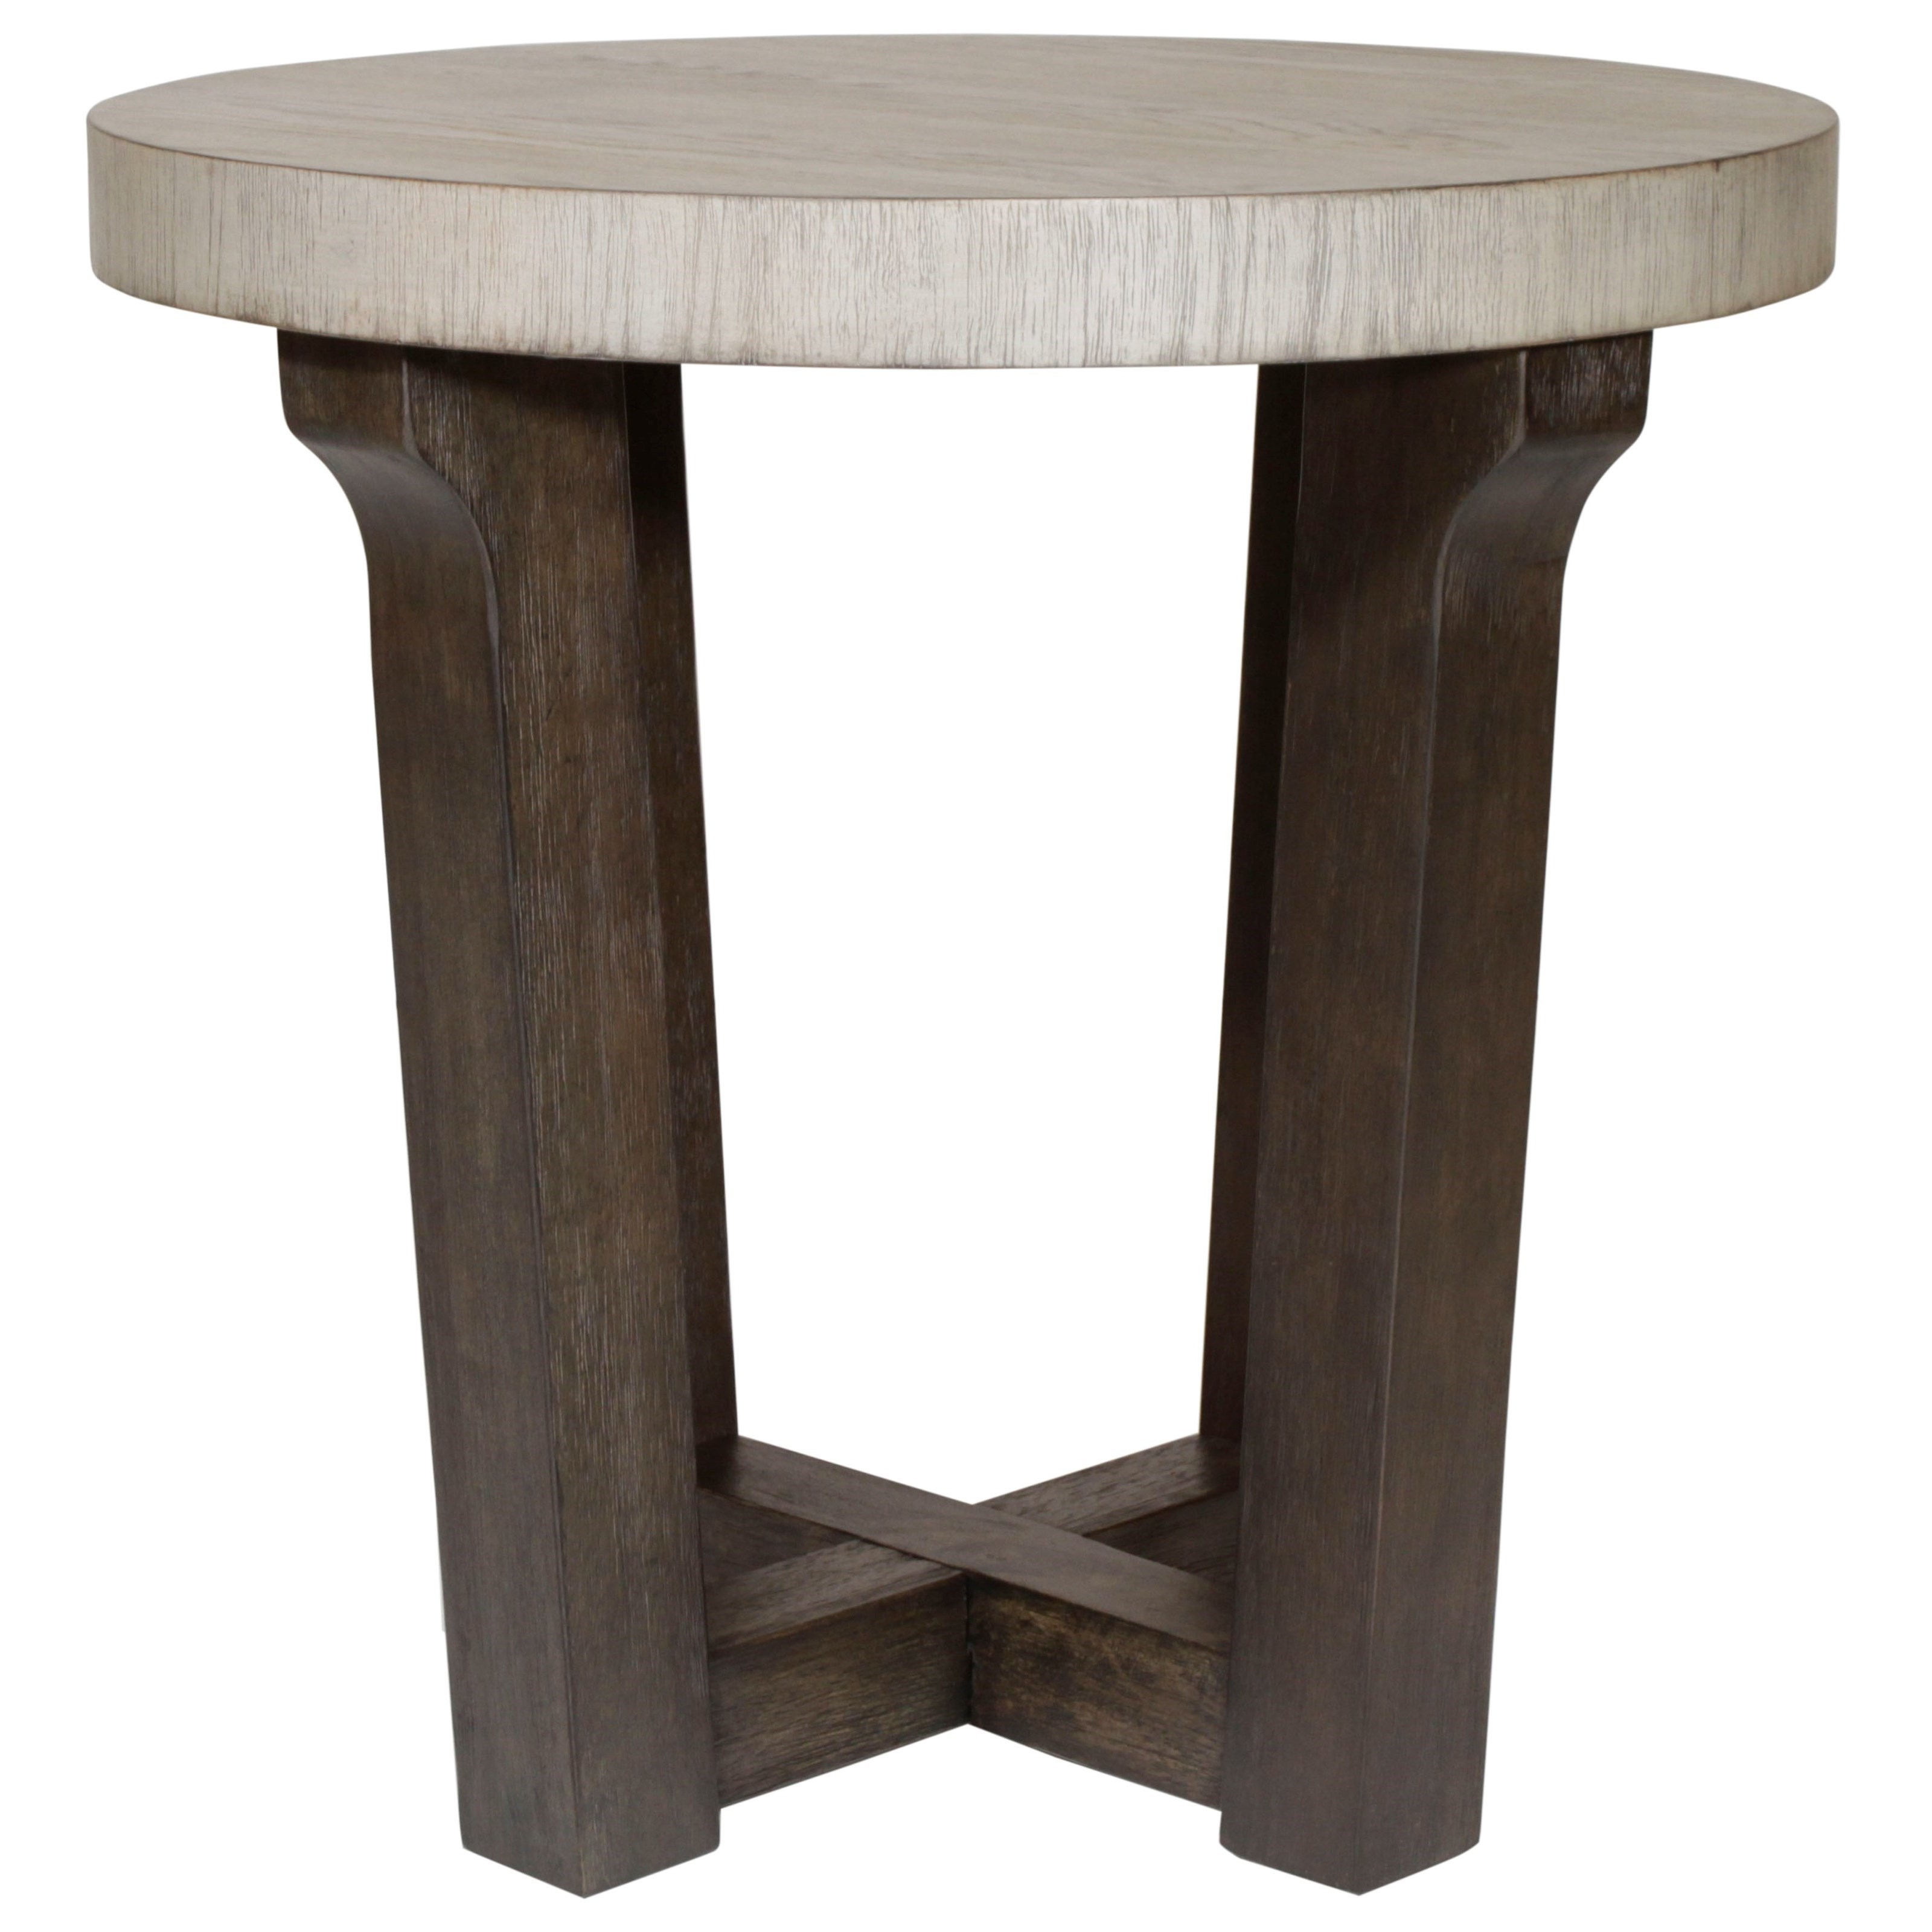 Beckham Round Accent Table by Hammary at Jordan's Home Furnishings